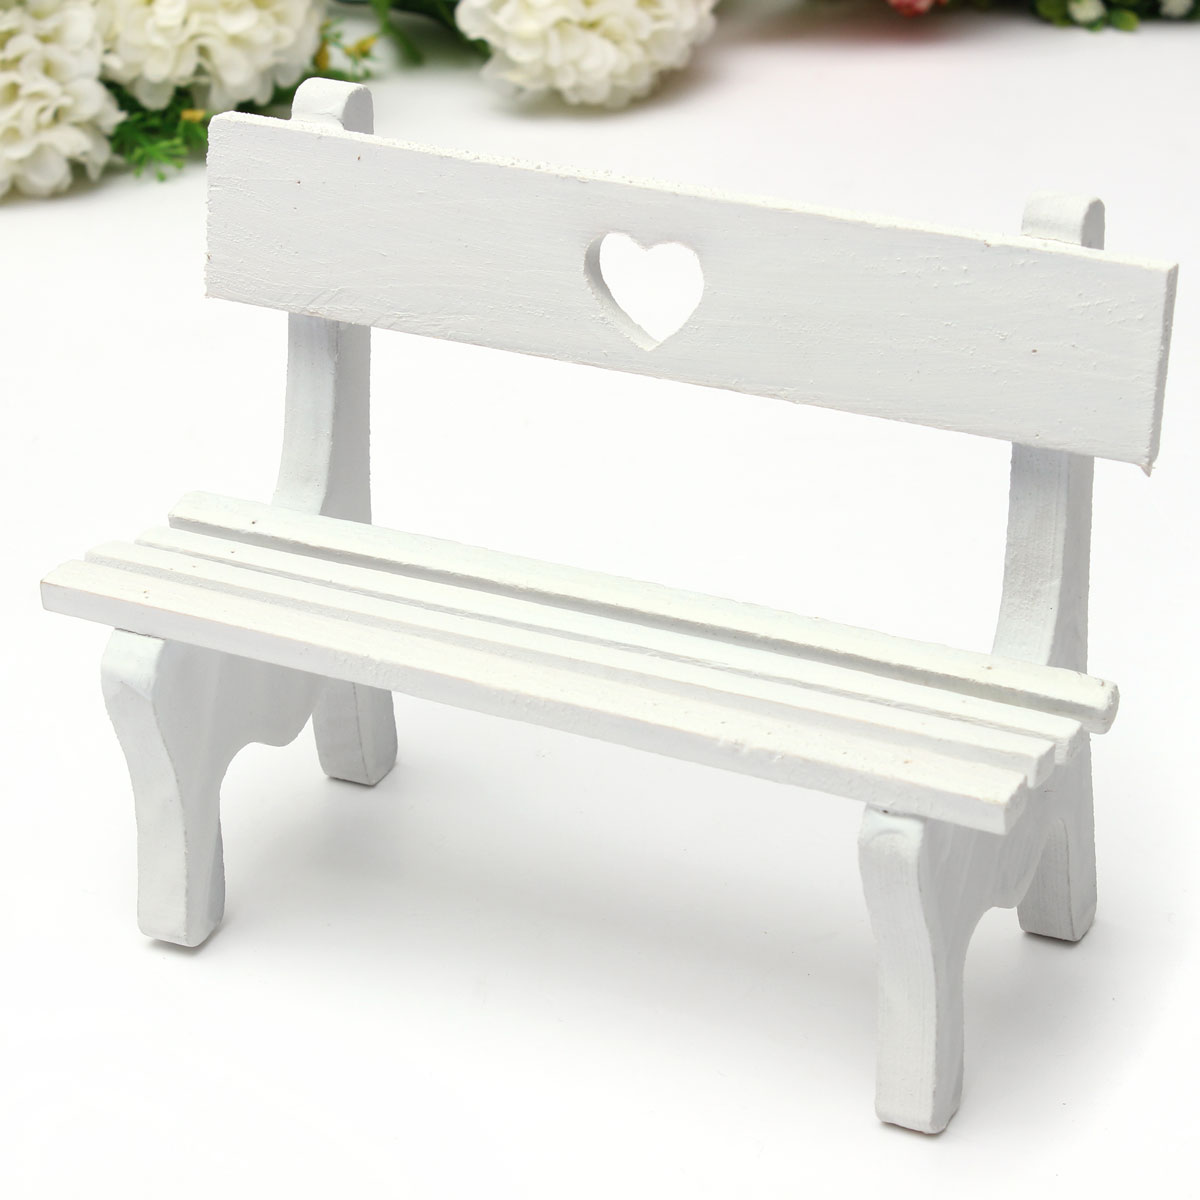 Mini Fairy Garden Wooden Chair Bench Wedding Cake Model DollHouse Grocery Decor